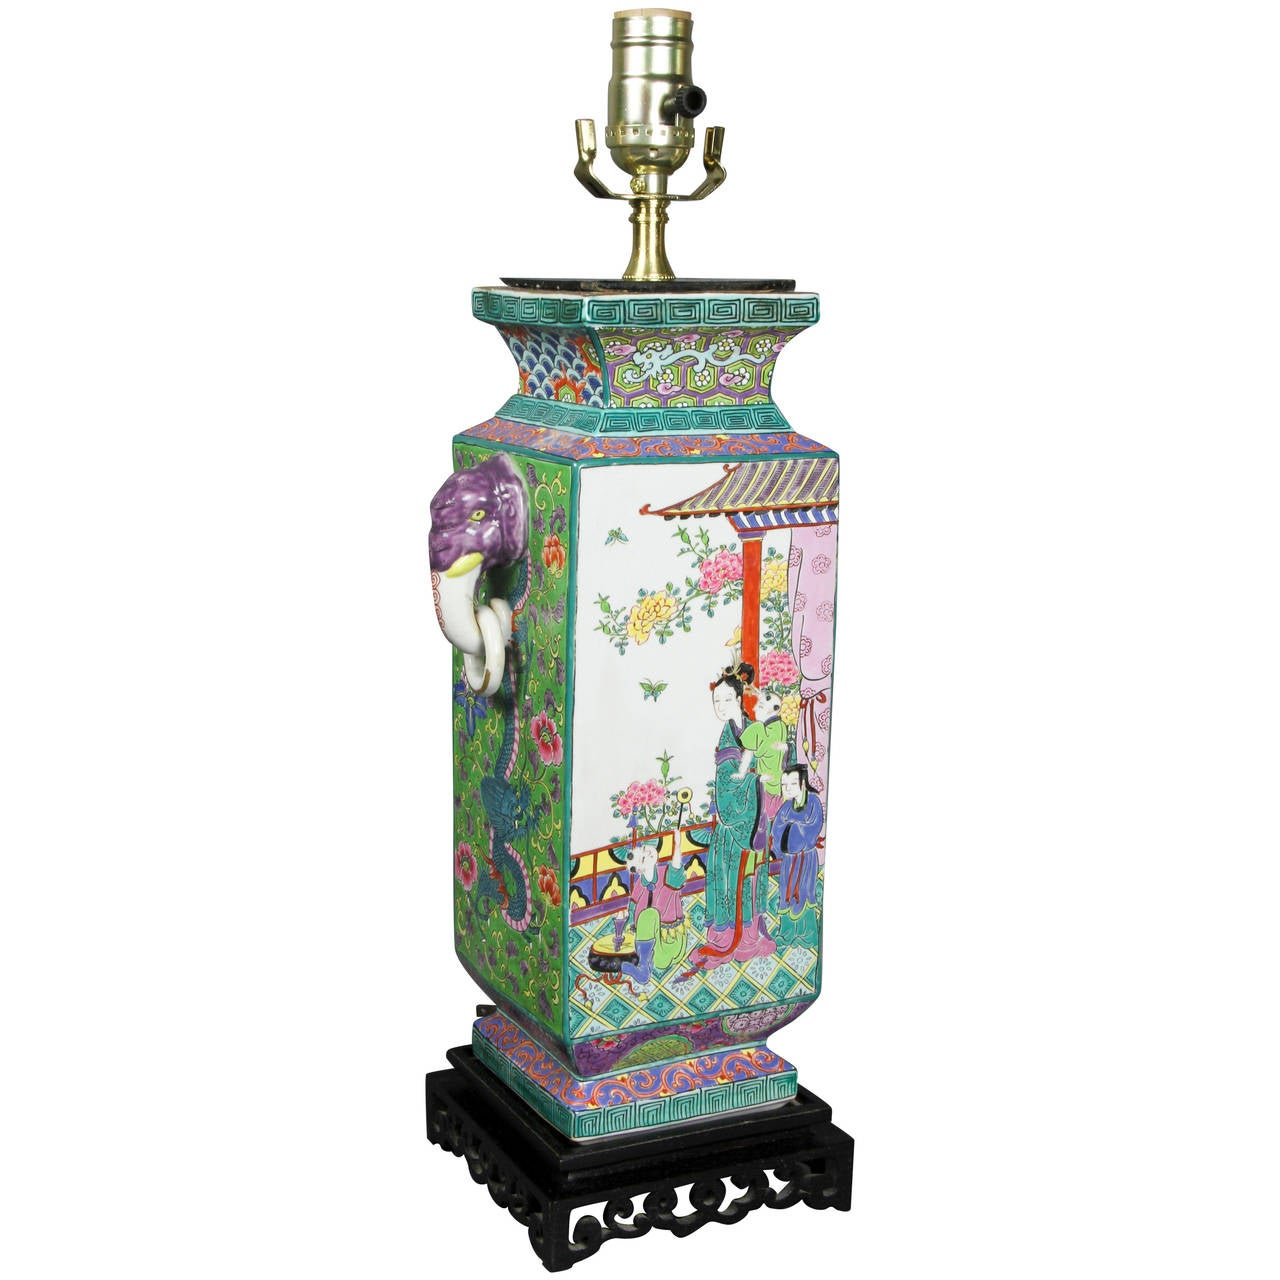 Japanese Porcelain Table Lamp For Sale At 1stdibs